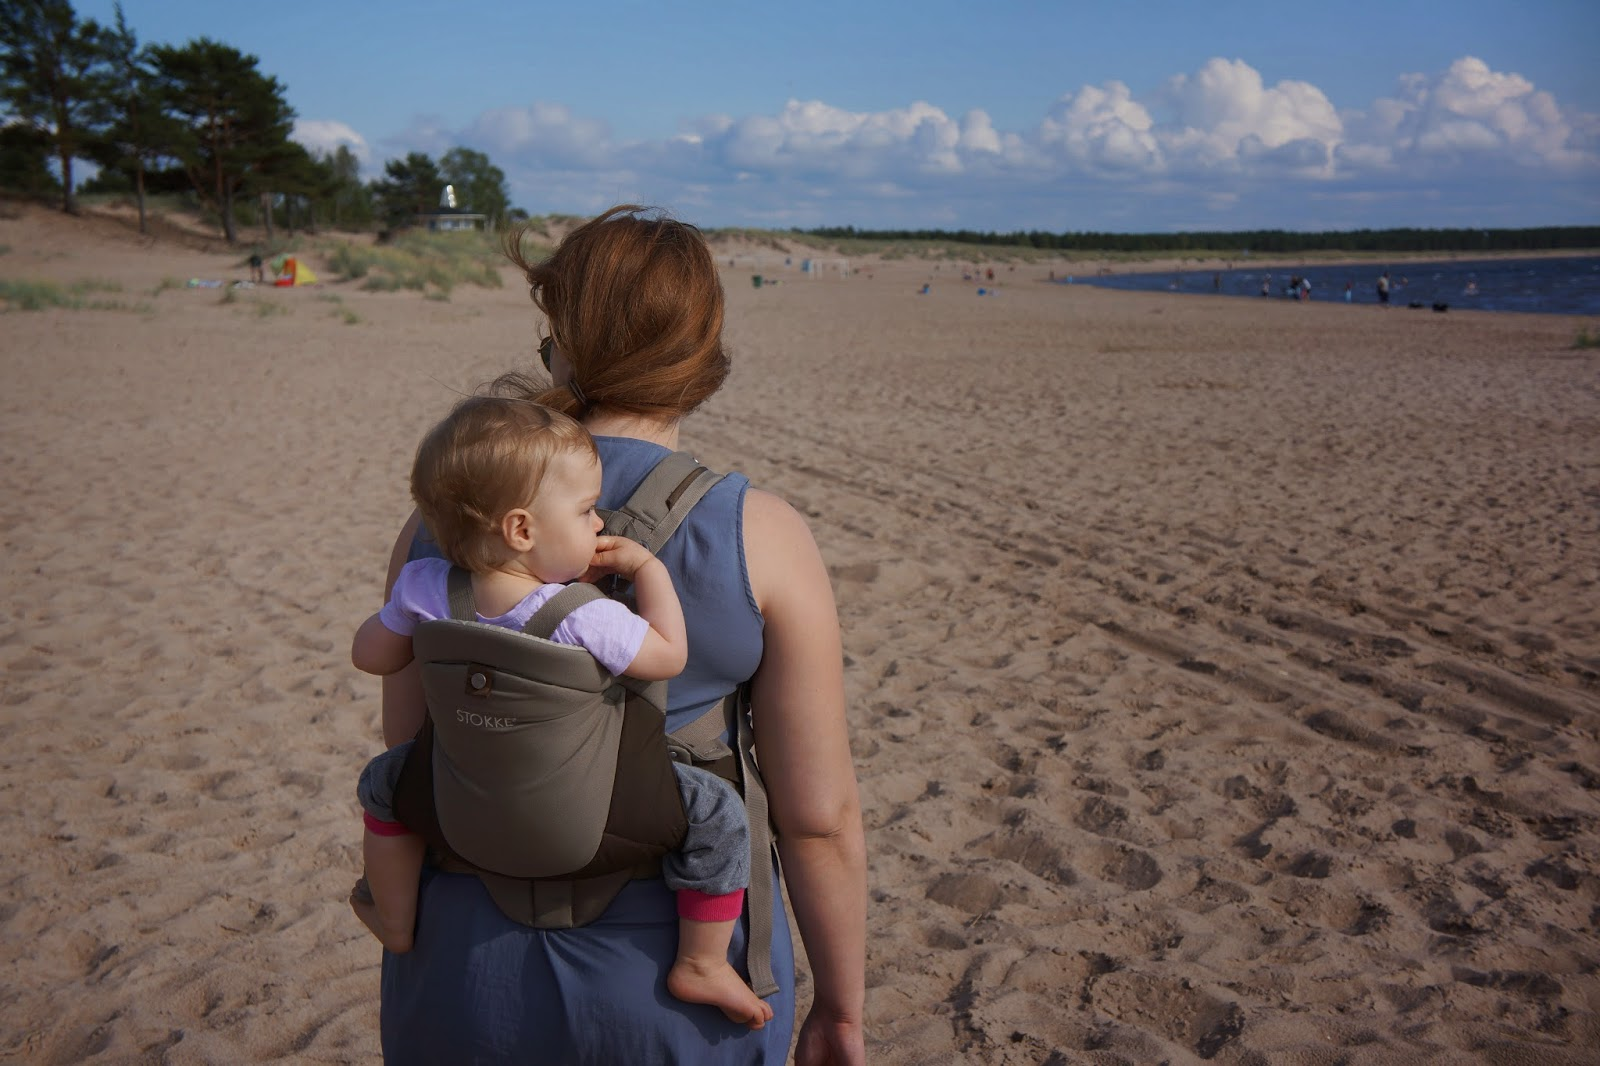 stokke mycarrier on a beach